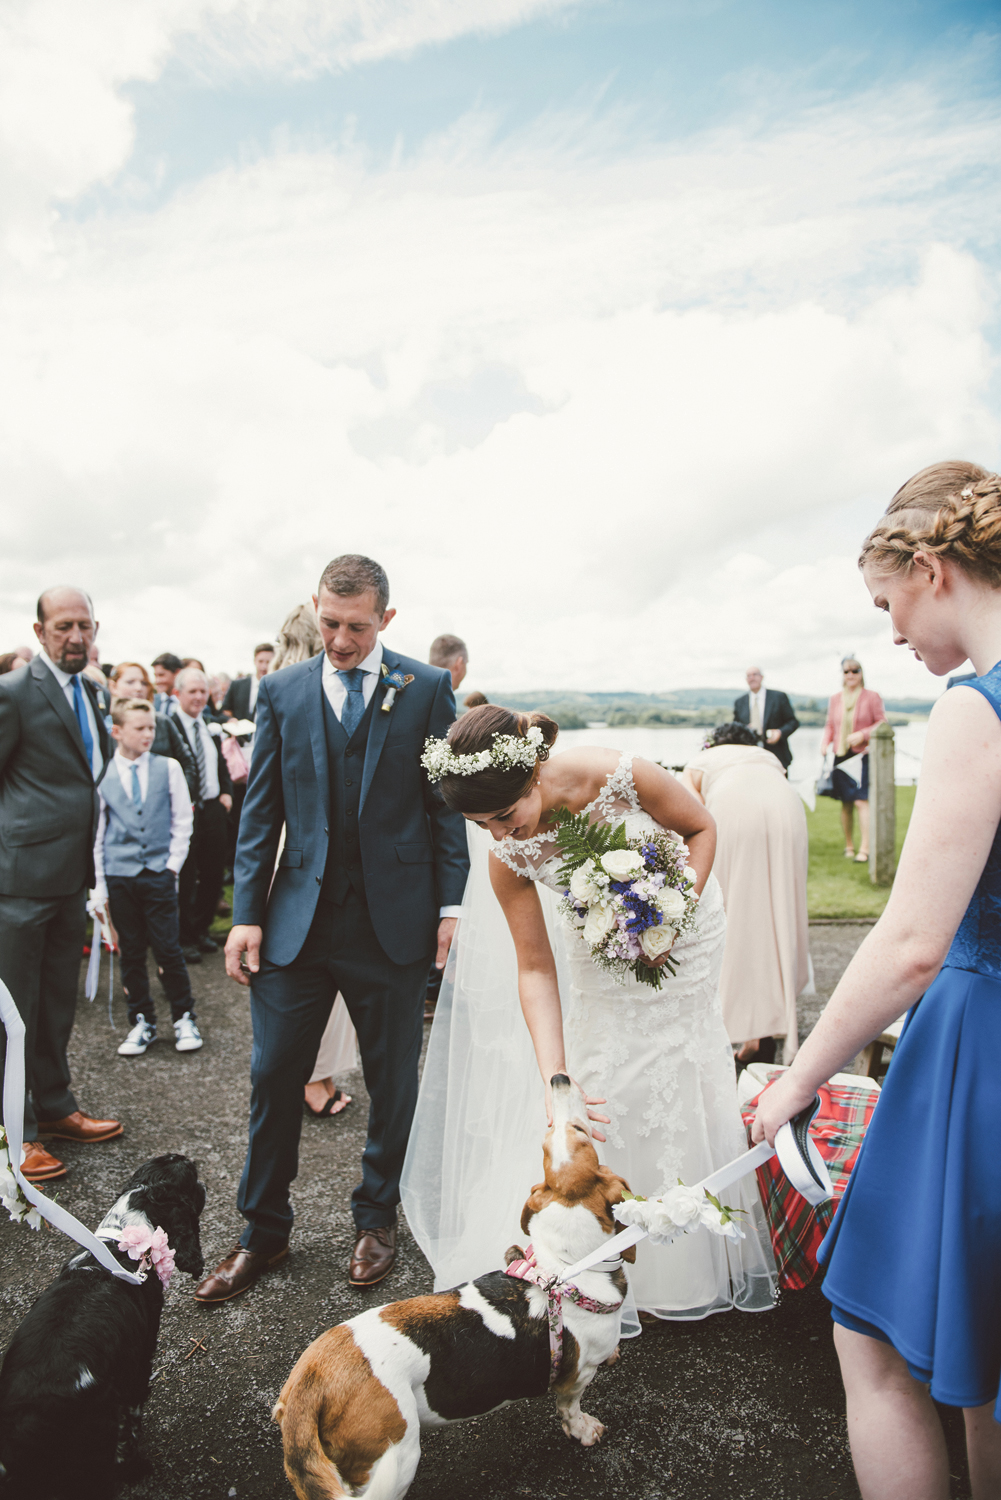 Puppy Love …  For some, pets are family too. Invite you're favourite canine friends along to be part of your special day.  Image Credit   Paula Gillespie